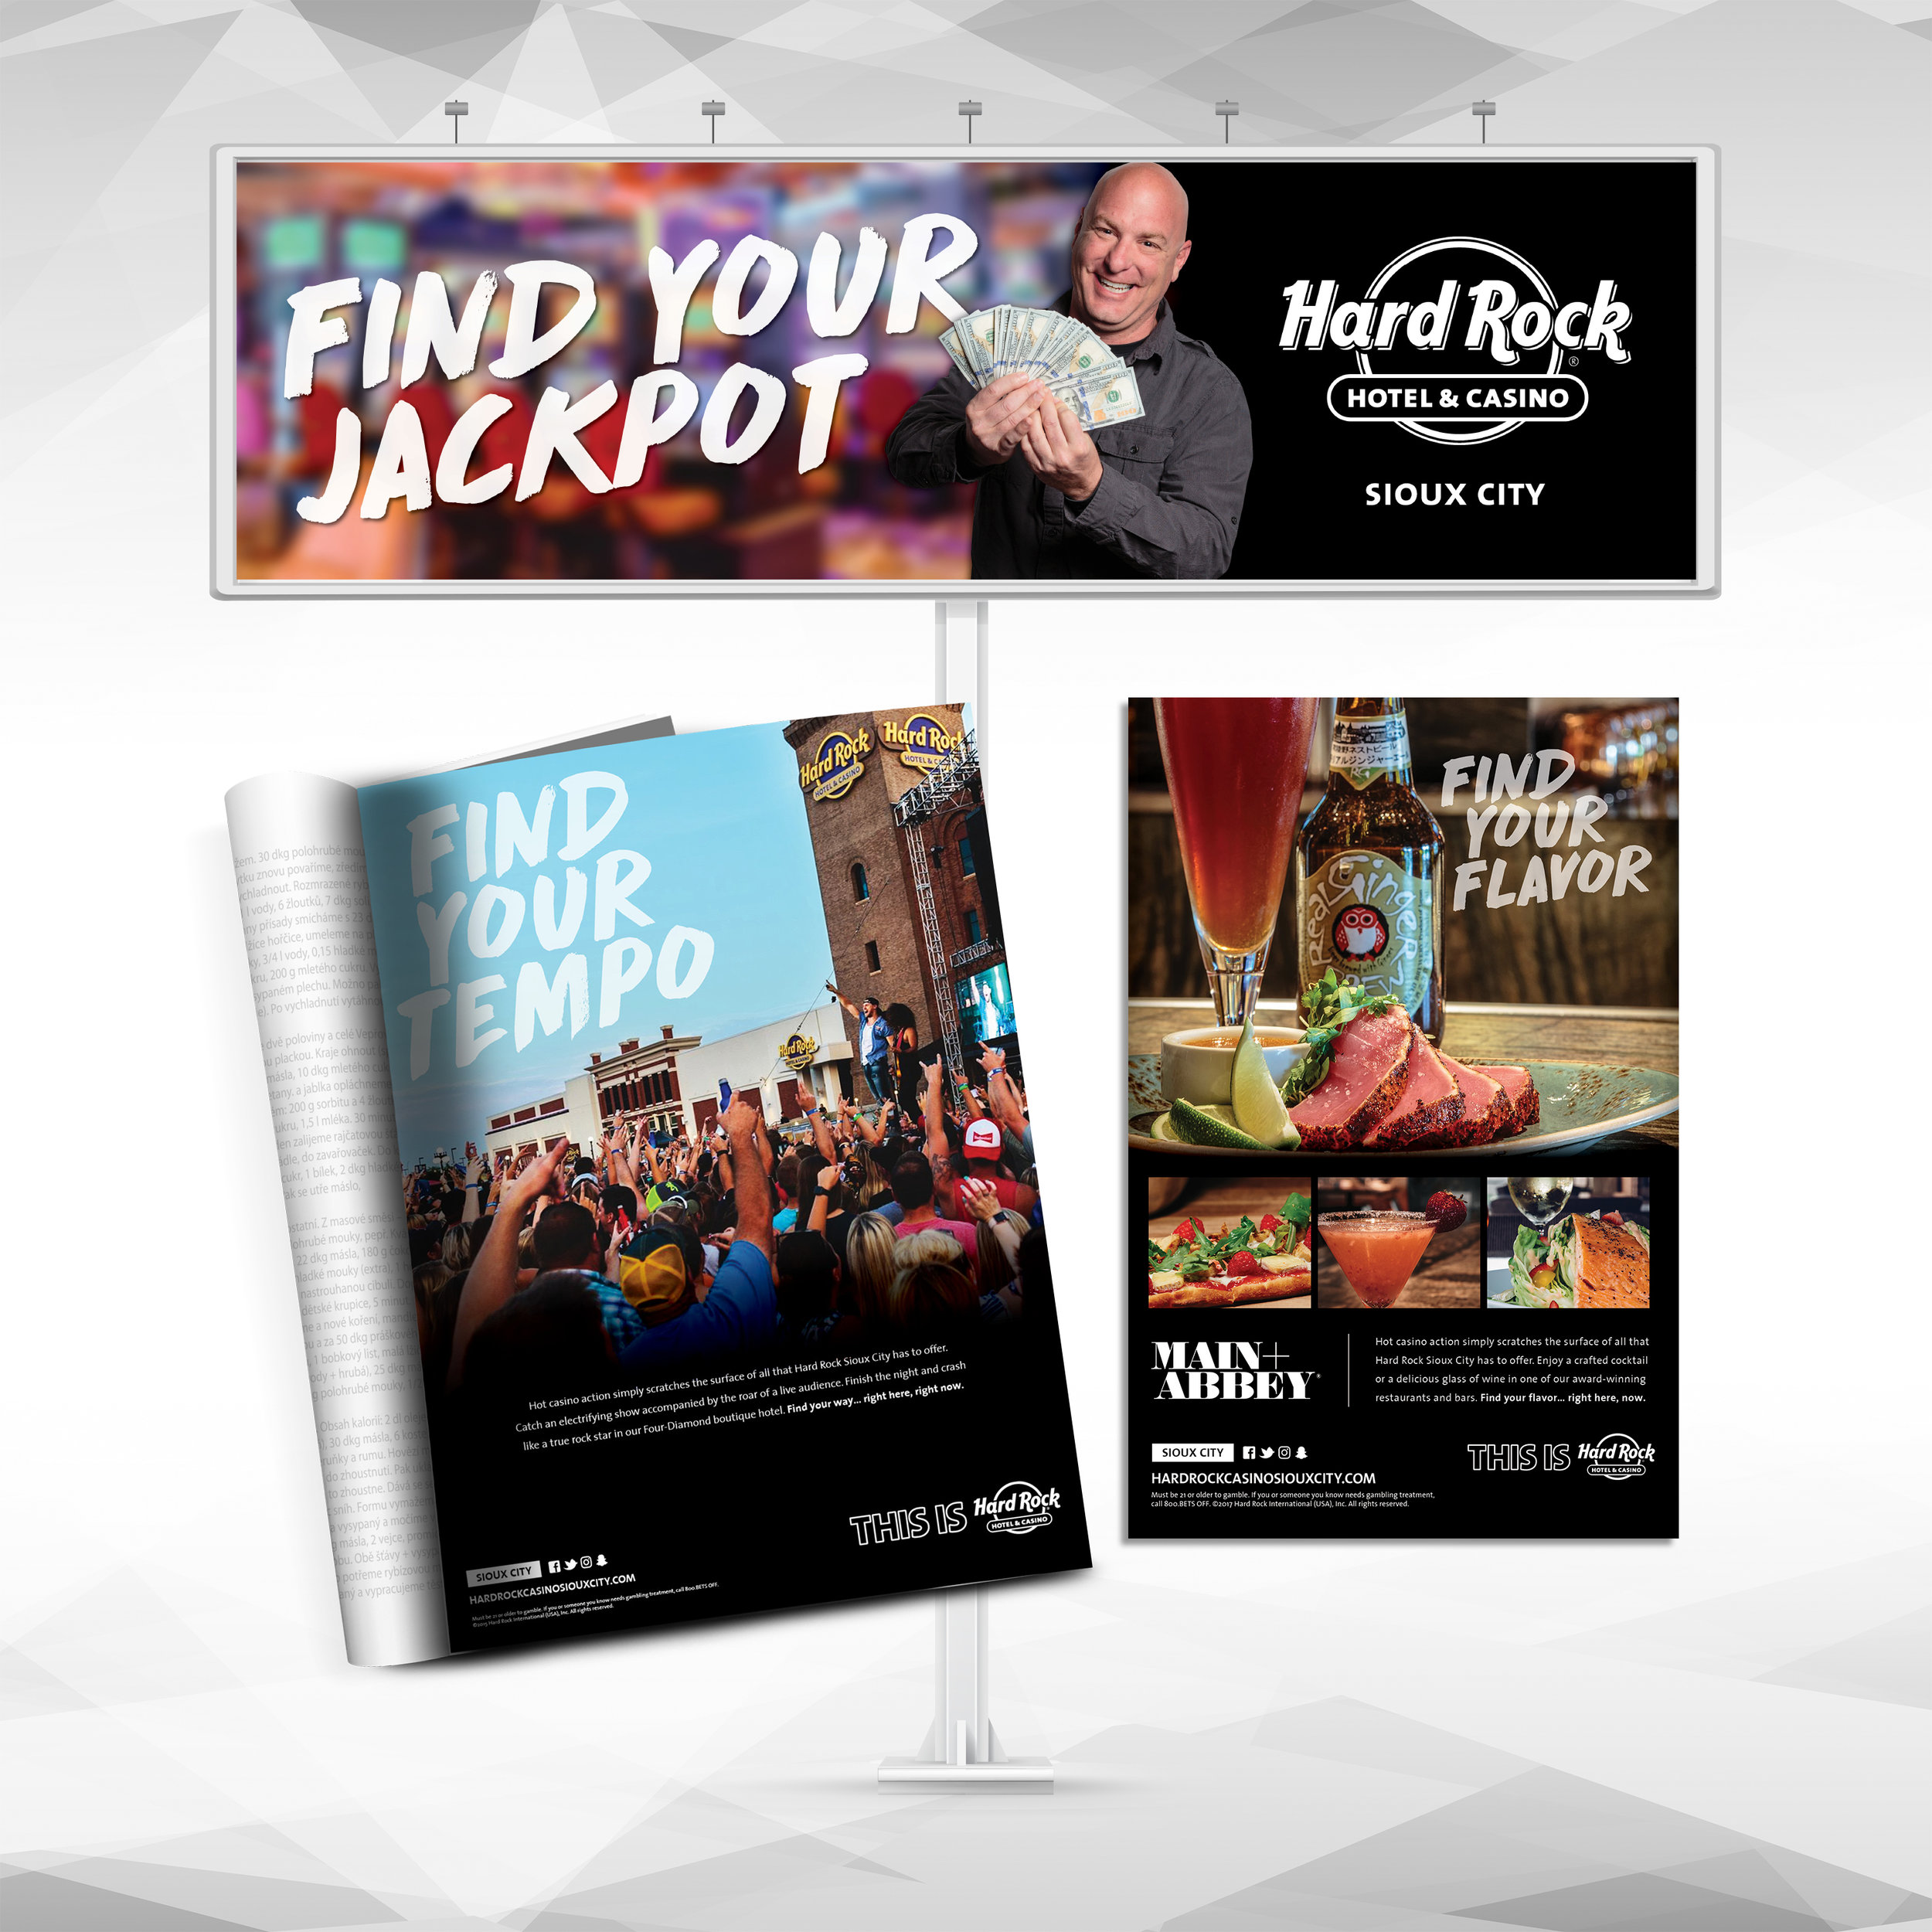 Hard Rock Hotel & Casino Sioux City: Find Your Campaign